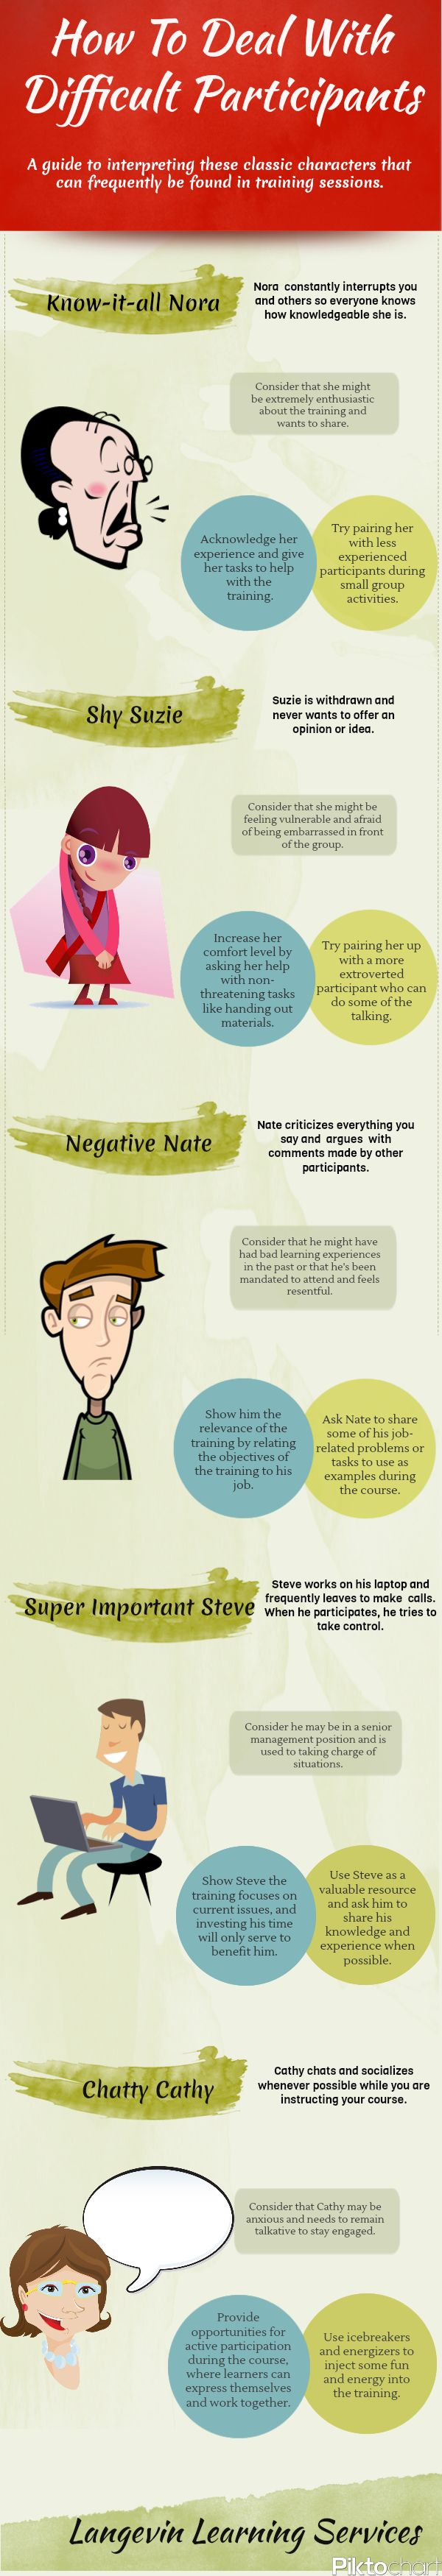 How to deal with difficult participants in your training infographic #tipsfortrainers